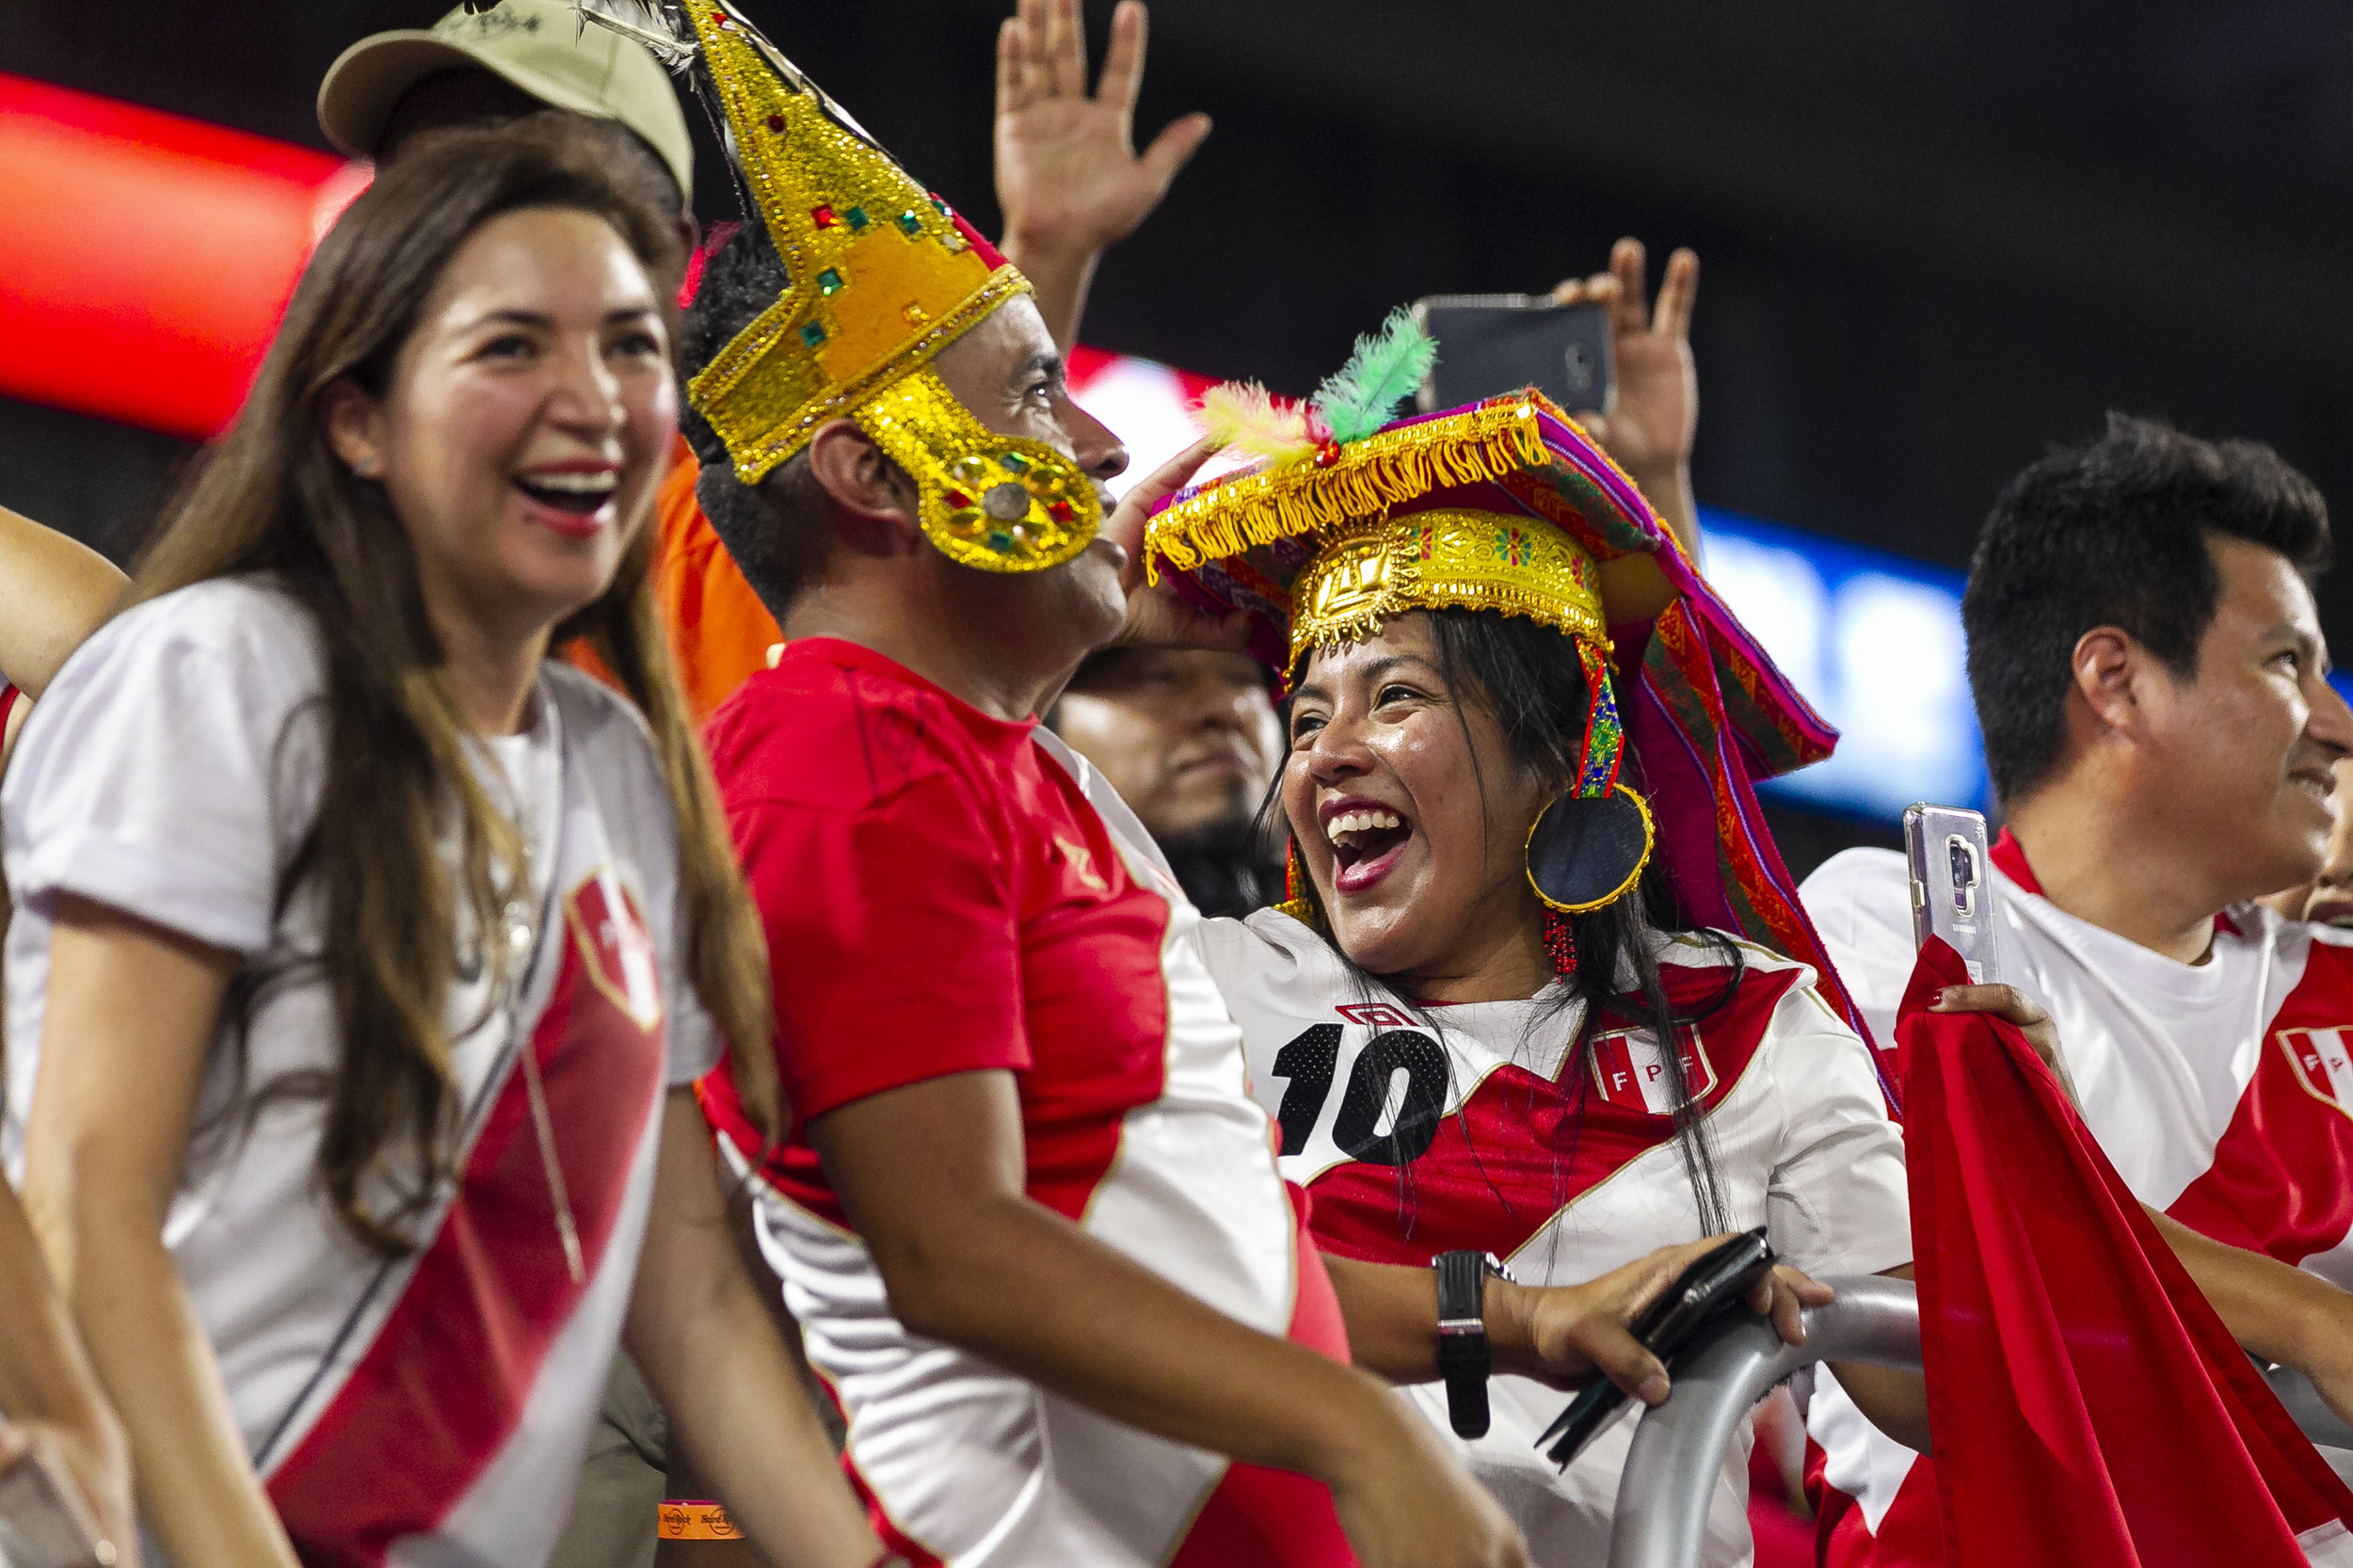 Fans celebrate before the start of a friendly soccer match between Peru and Chile at Hard Rock Stadium in Miami Gardens on Friday, Oct. 12, 2018.